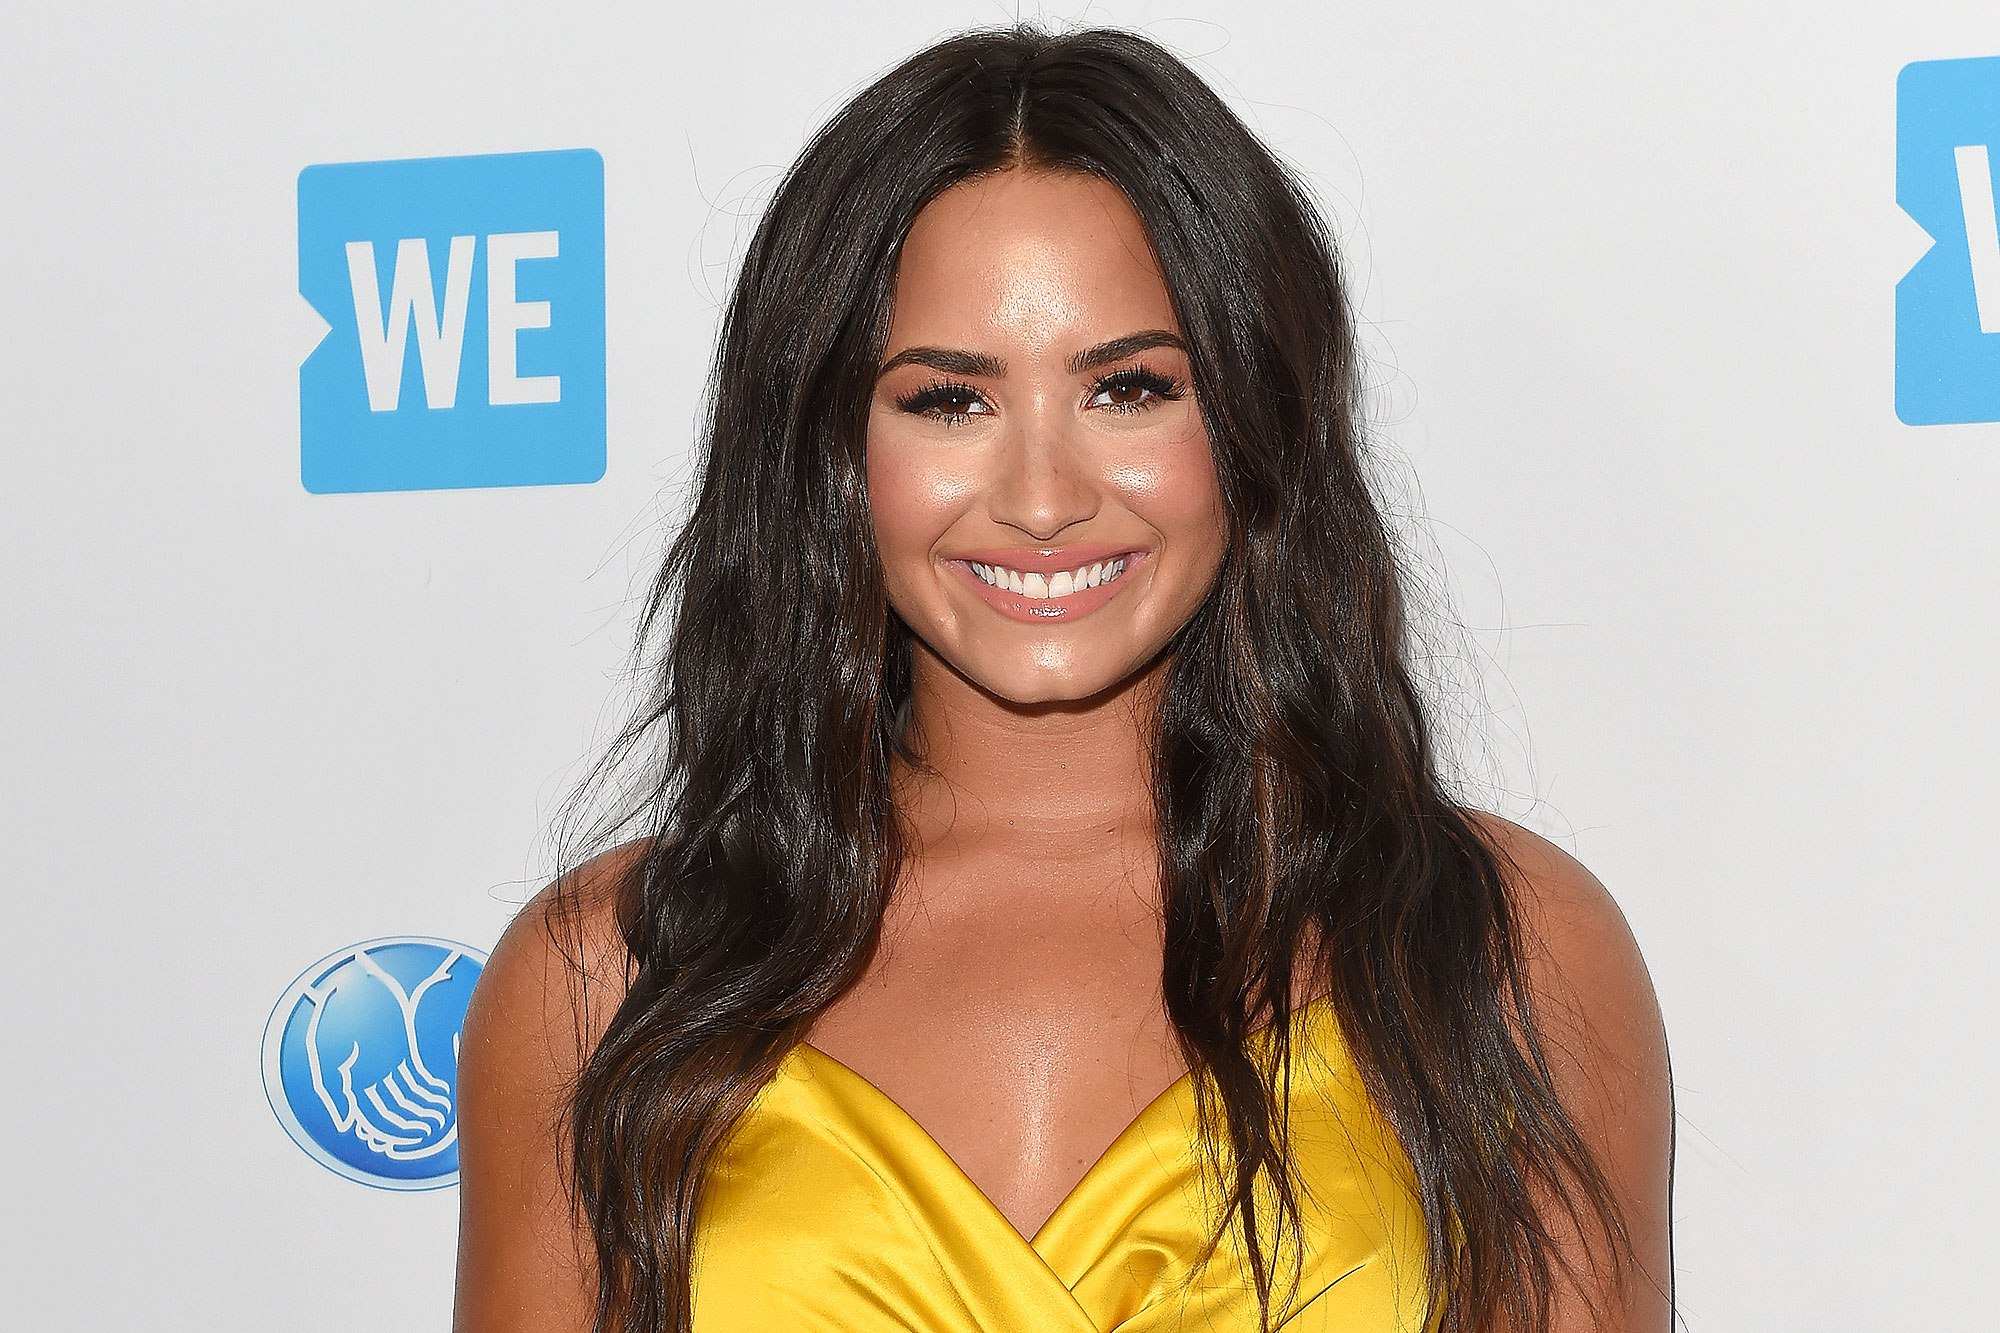 Watch: Demi Lovato Opening Up On Living With A Disability